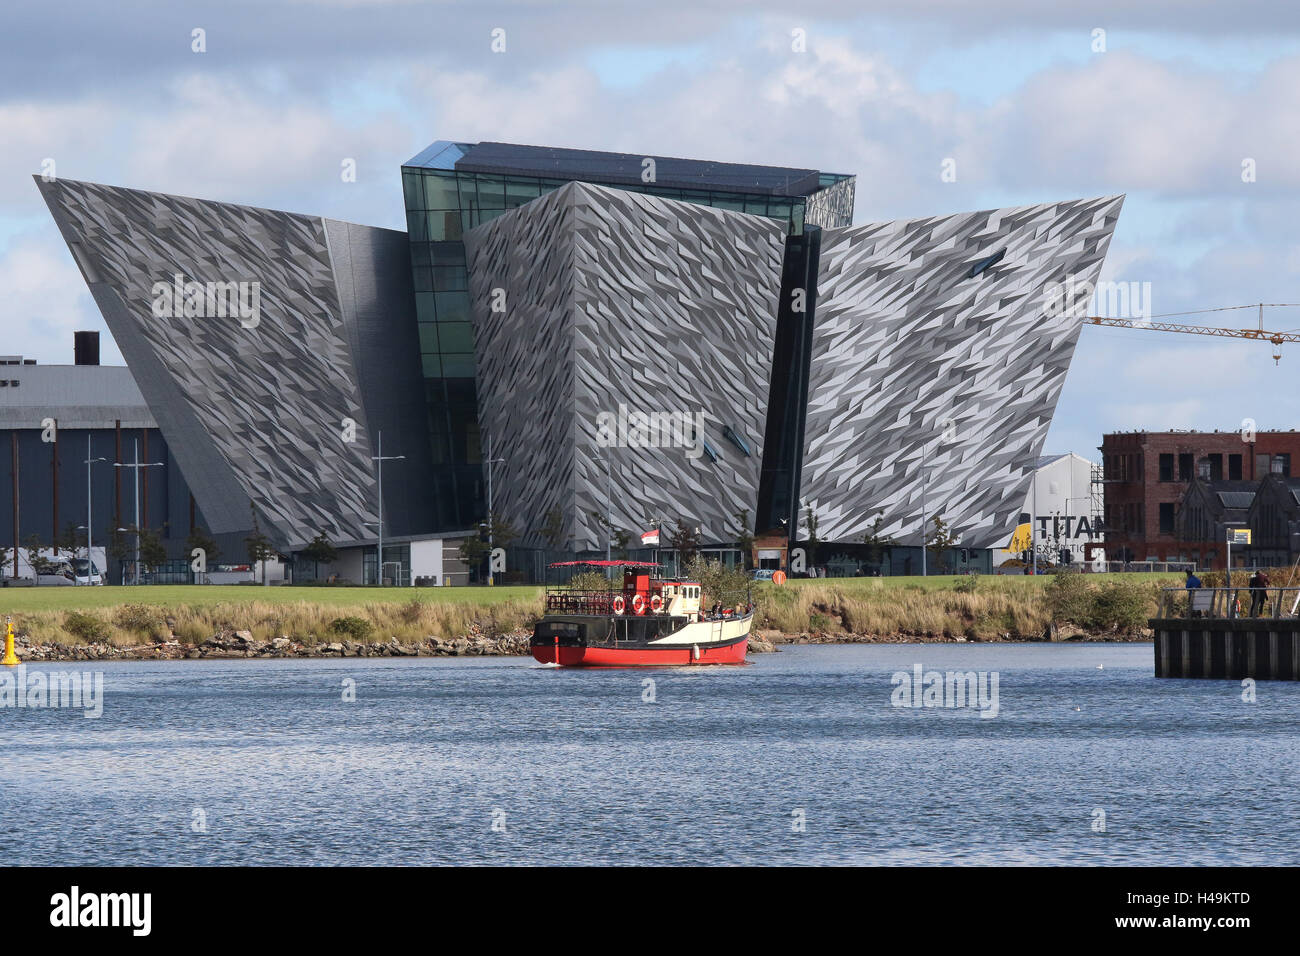 """The Titanic Building  in Belfast's Titanic Quarter.In the foreground is the """"Mona"""", a boat used for Titanic Boat Stock Photo"""